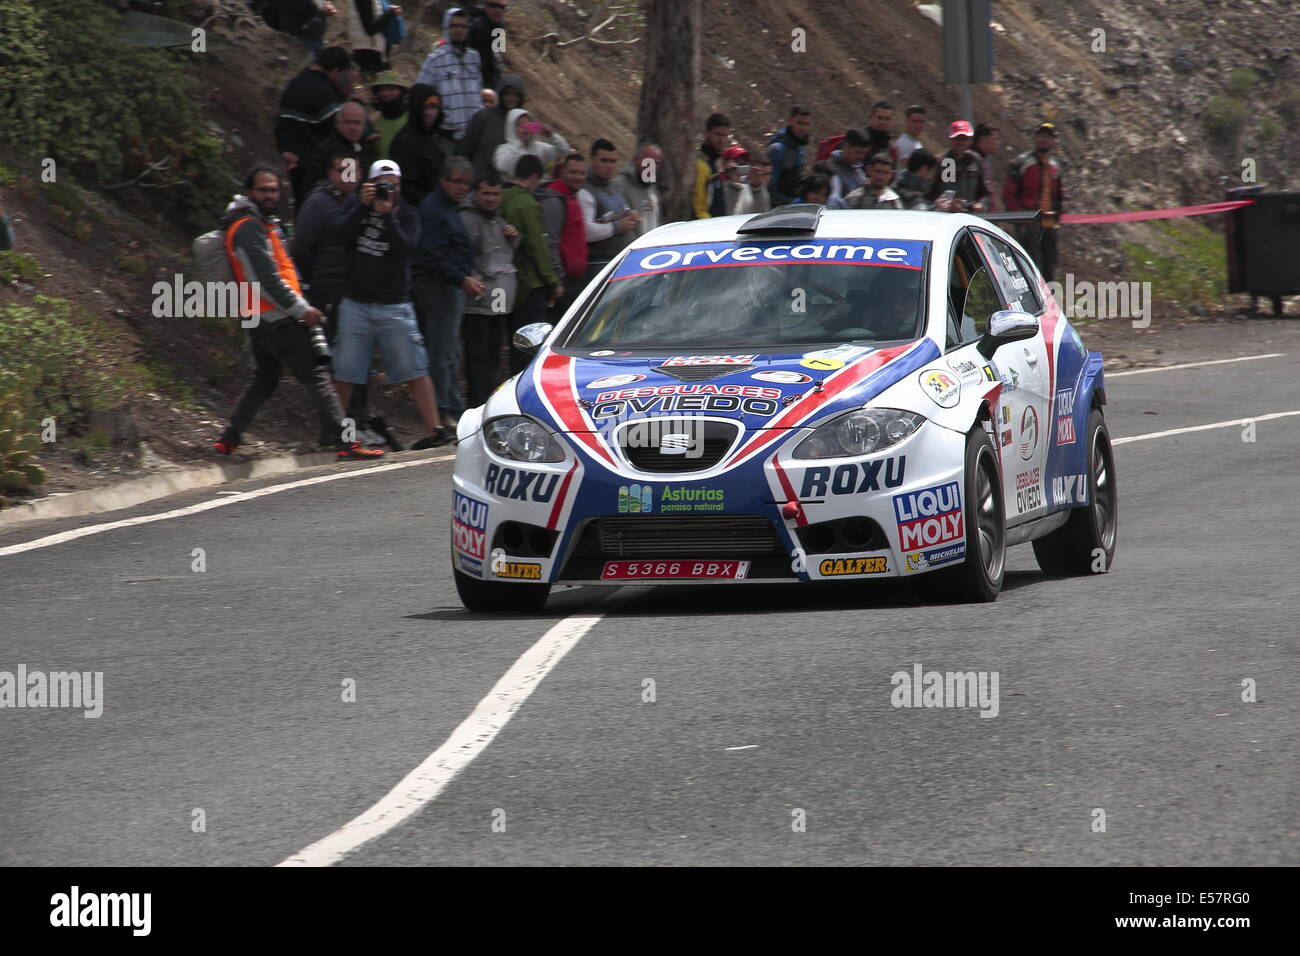 Spectators watching a Seat Leon rally competing in a special stage in the mountains of Gran Canaria, during the - Stock Image